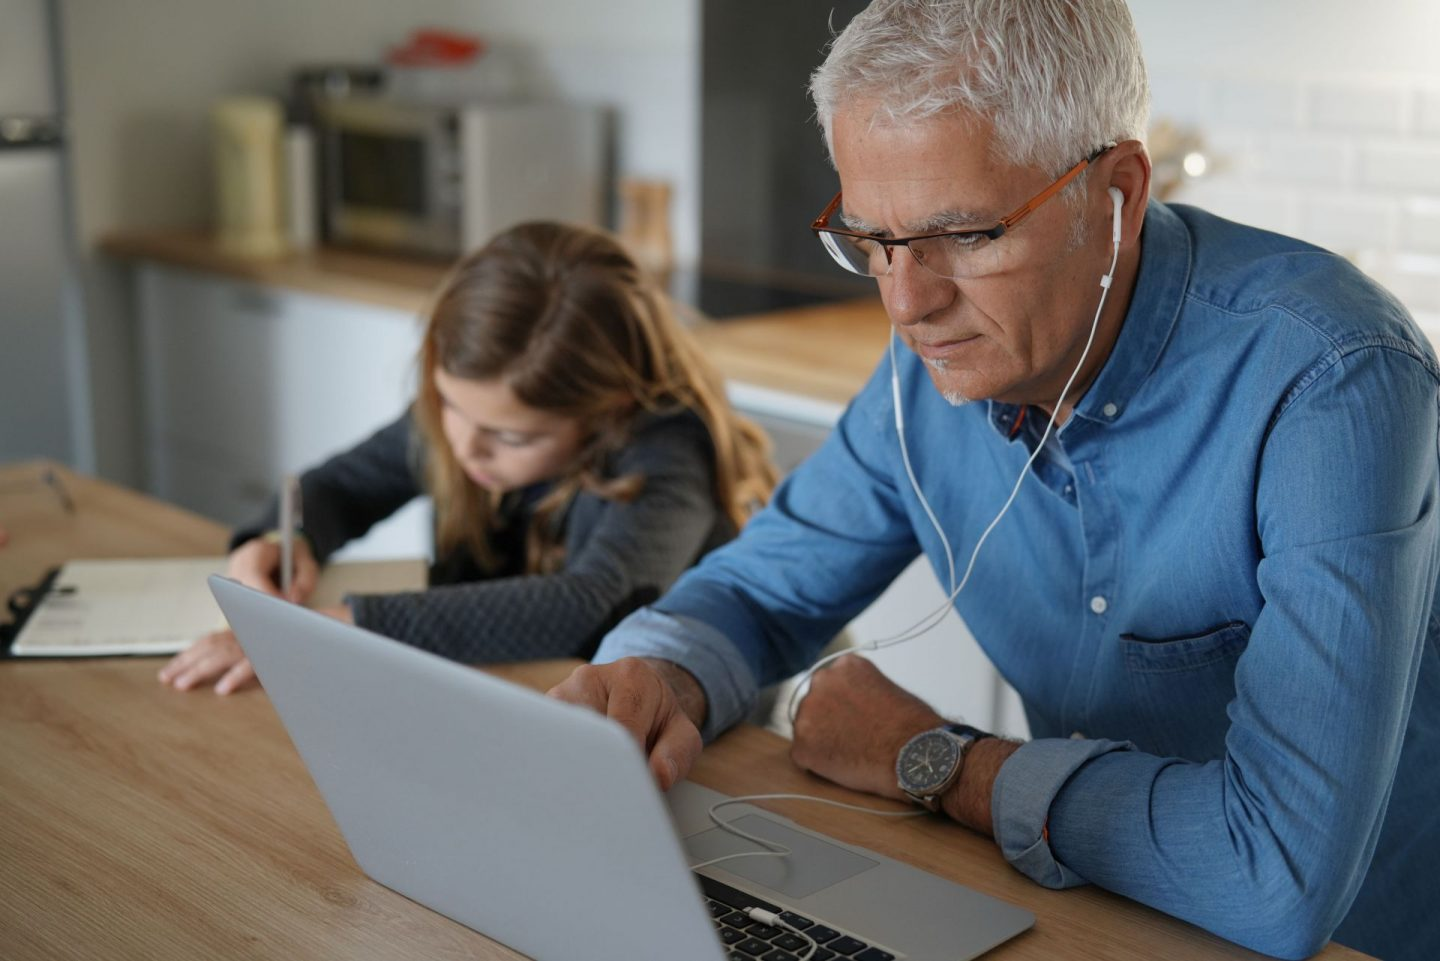 dads and homeschooling